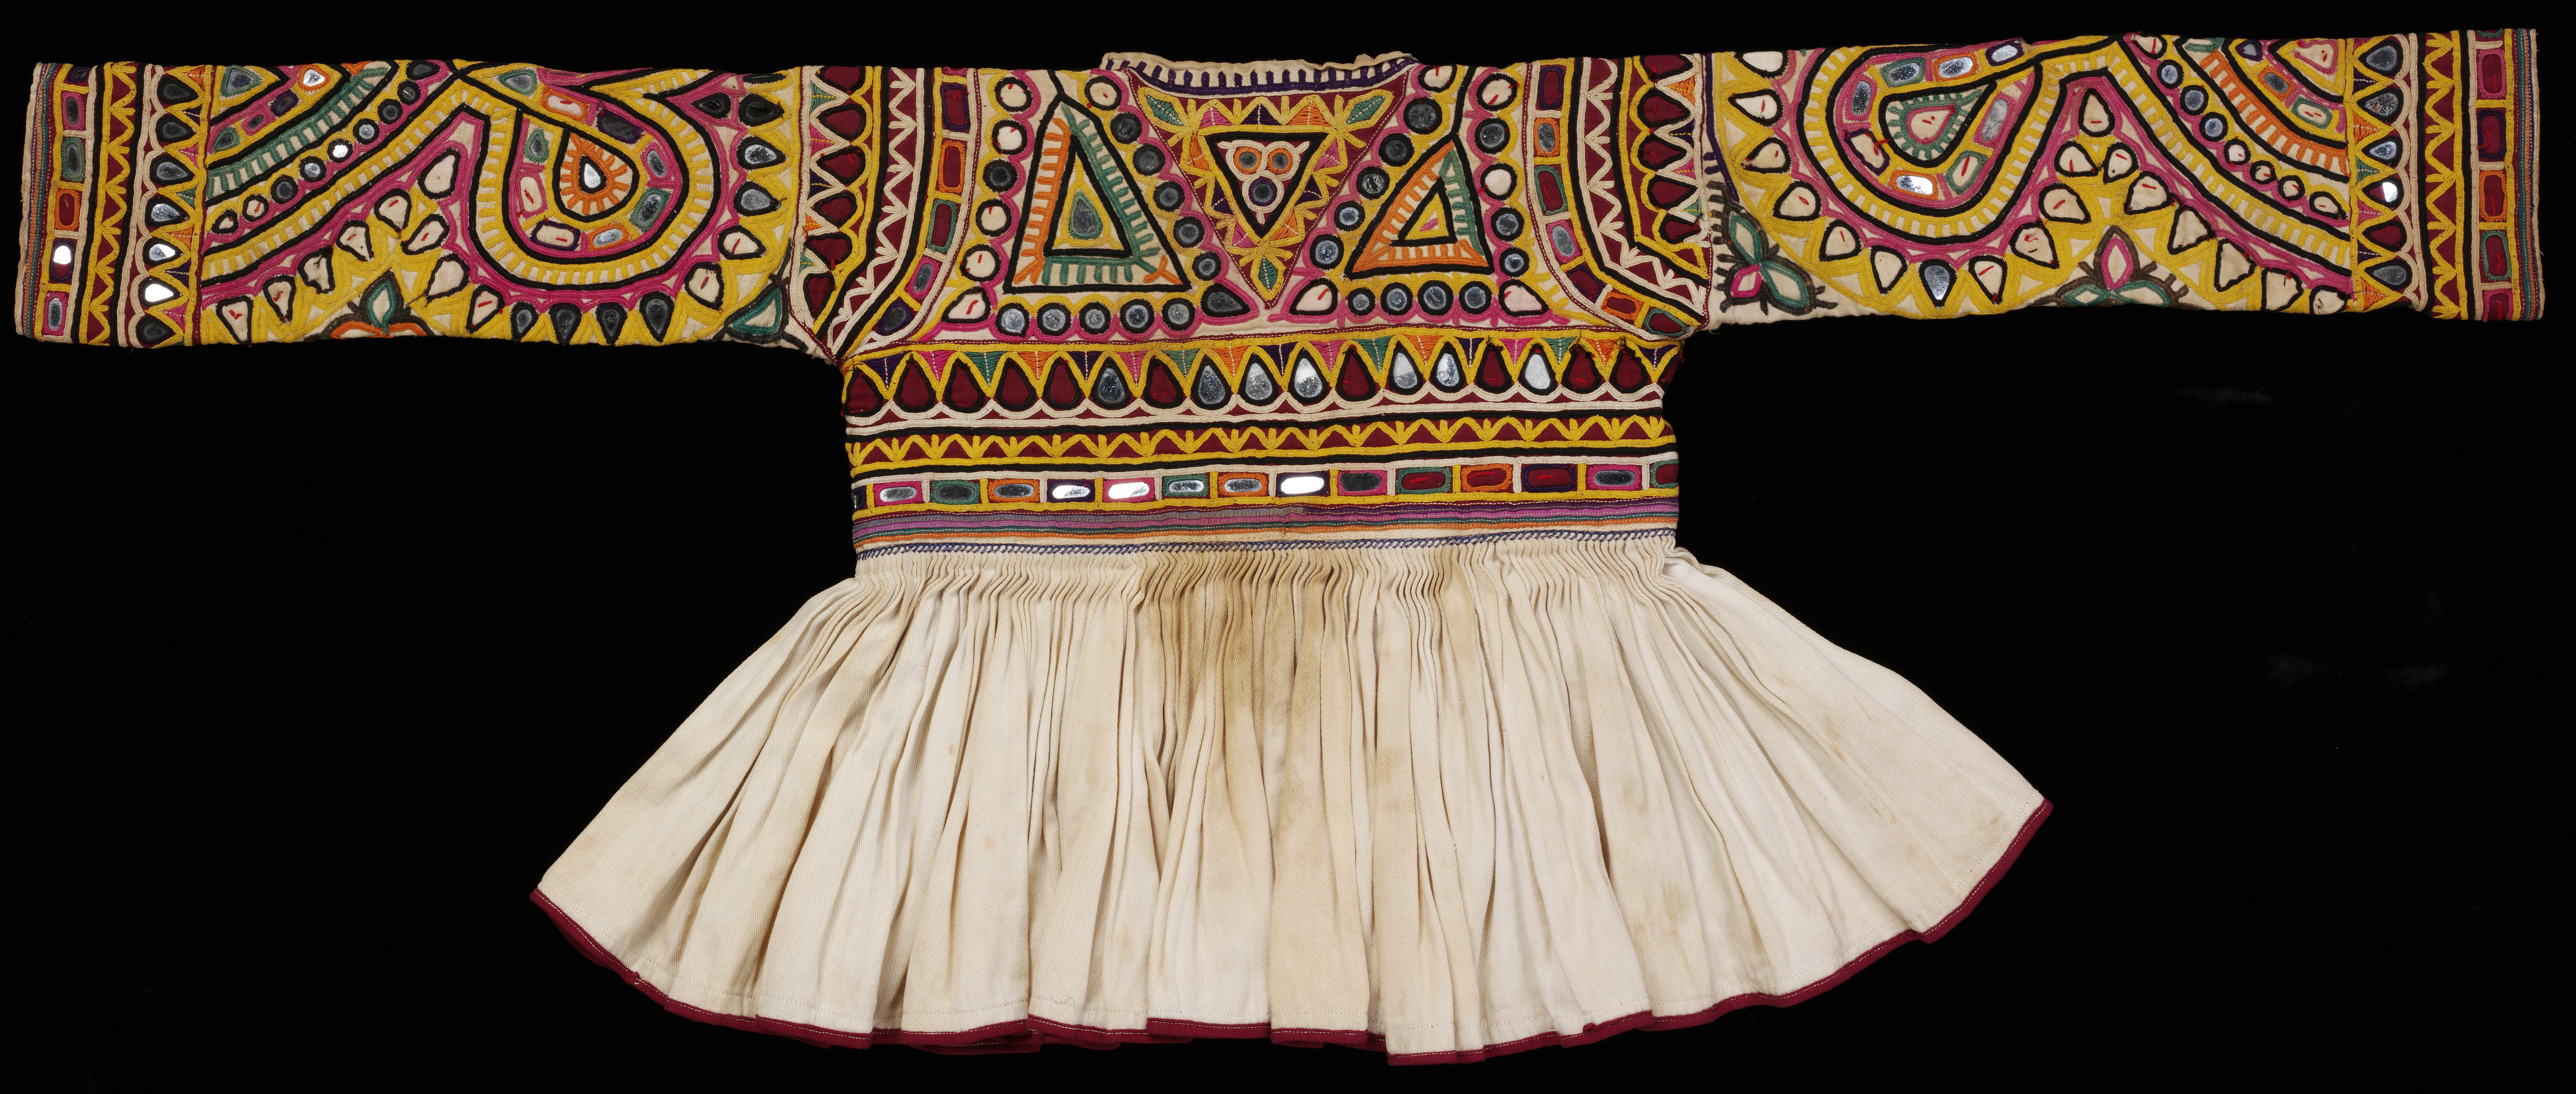 The Fabric Of India A Showcase Of Indian Textiles Set To